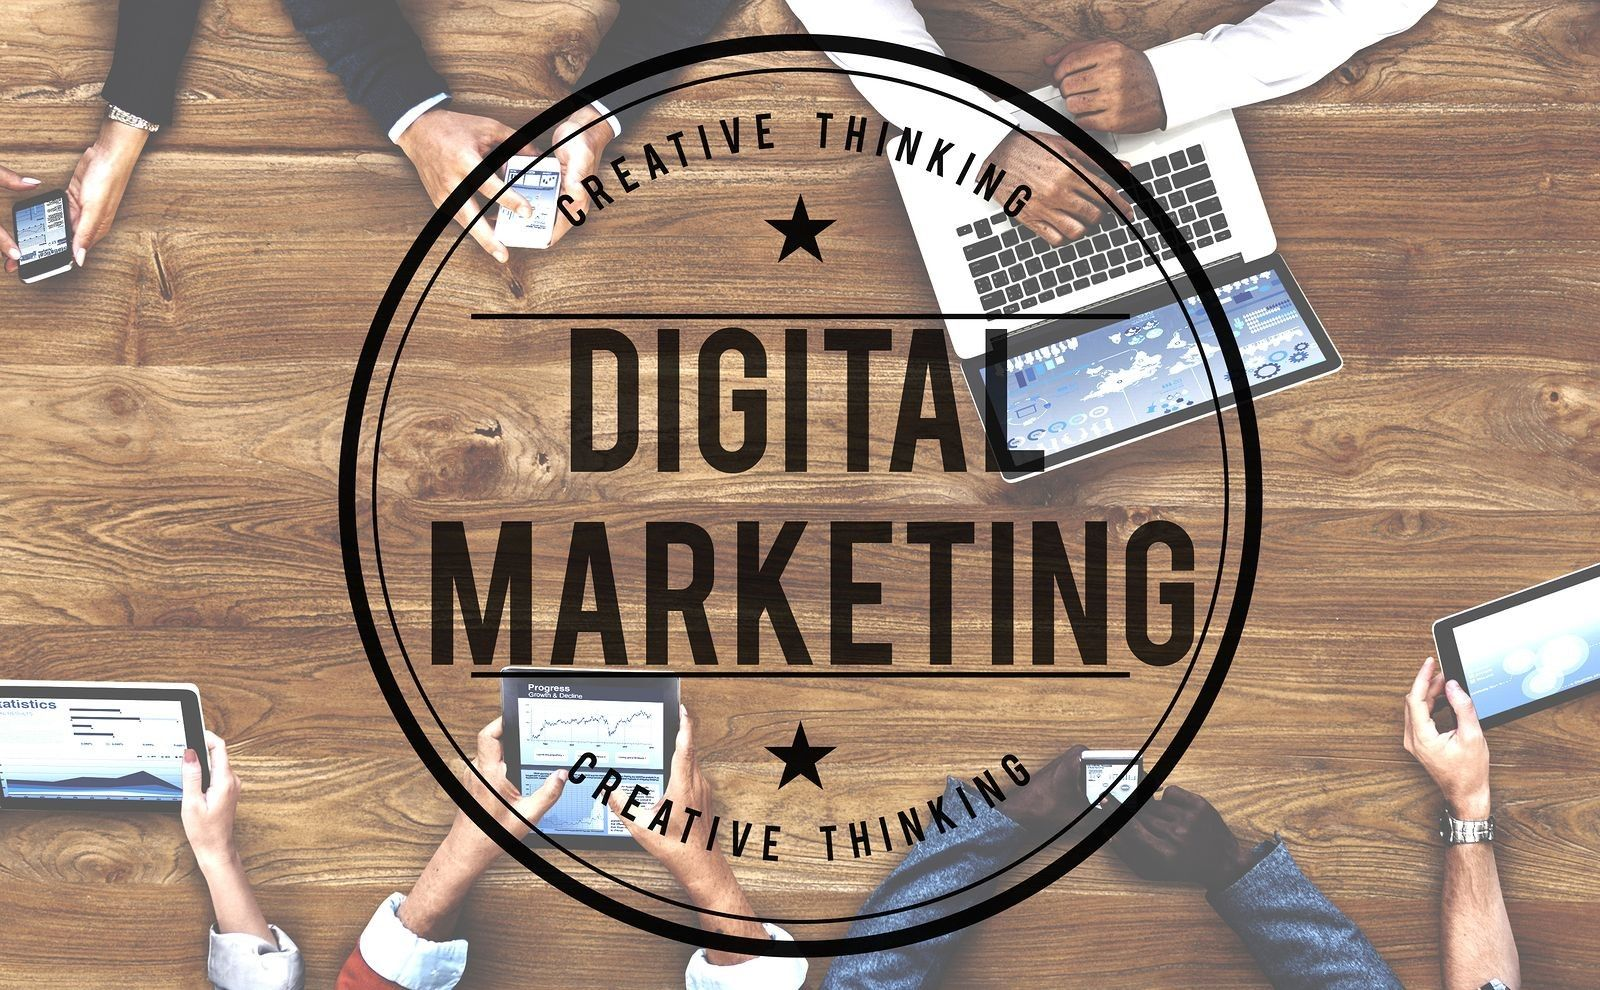 Digital Marketing Services Can Get You Closer to Your Target Audience